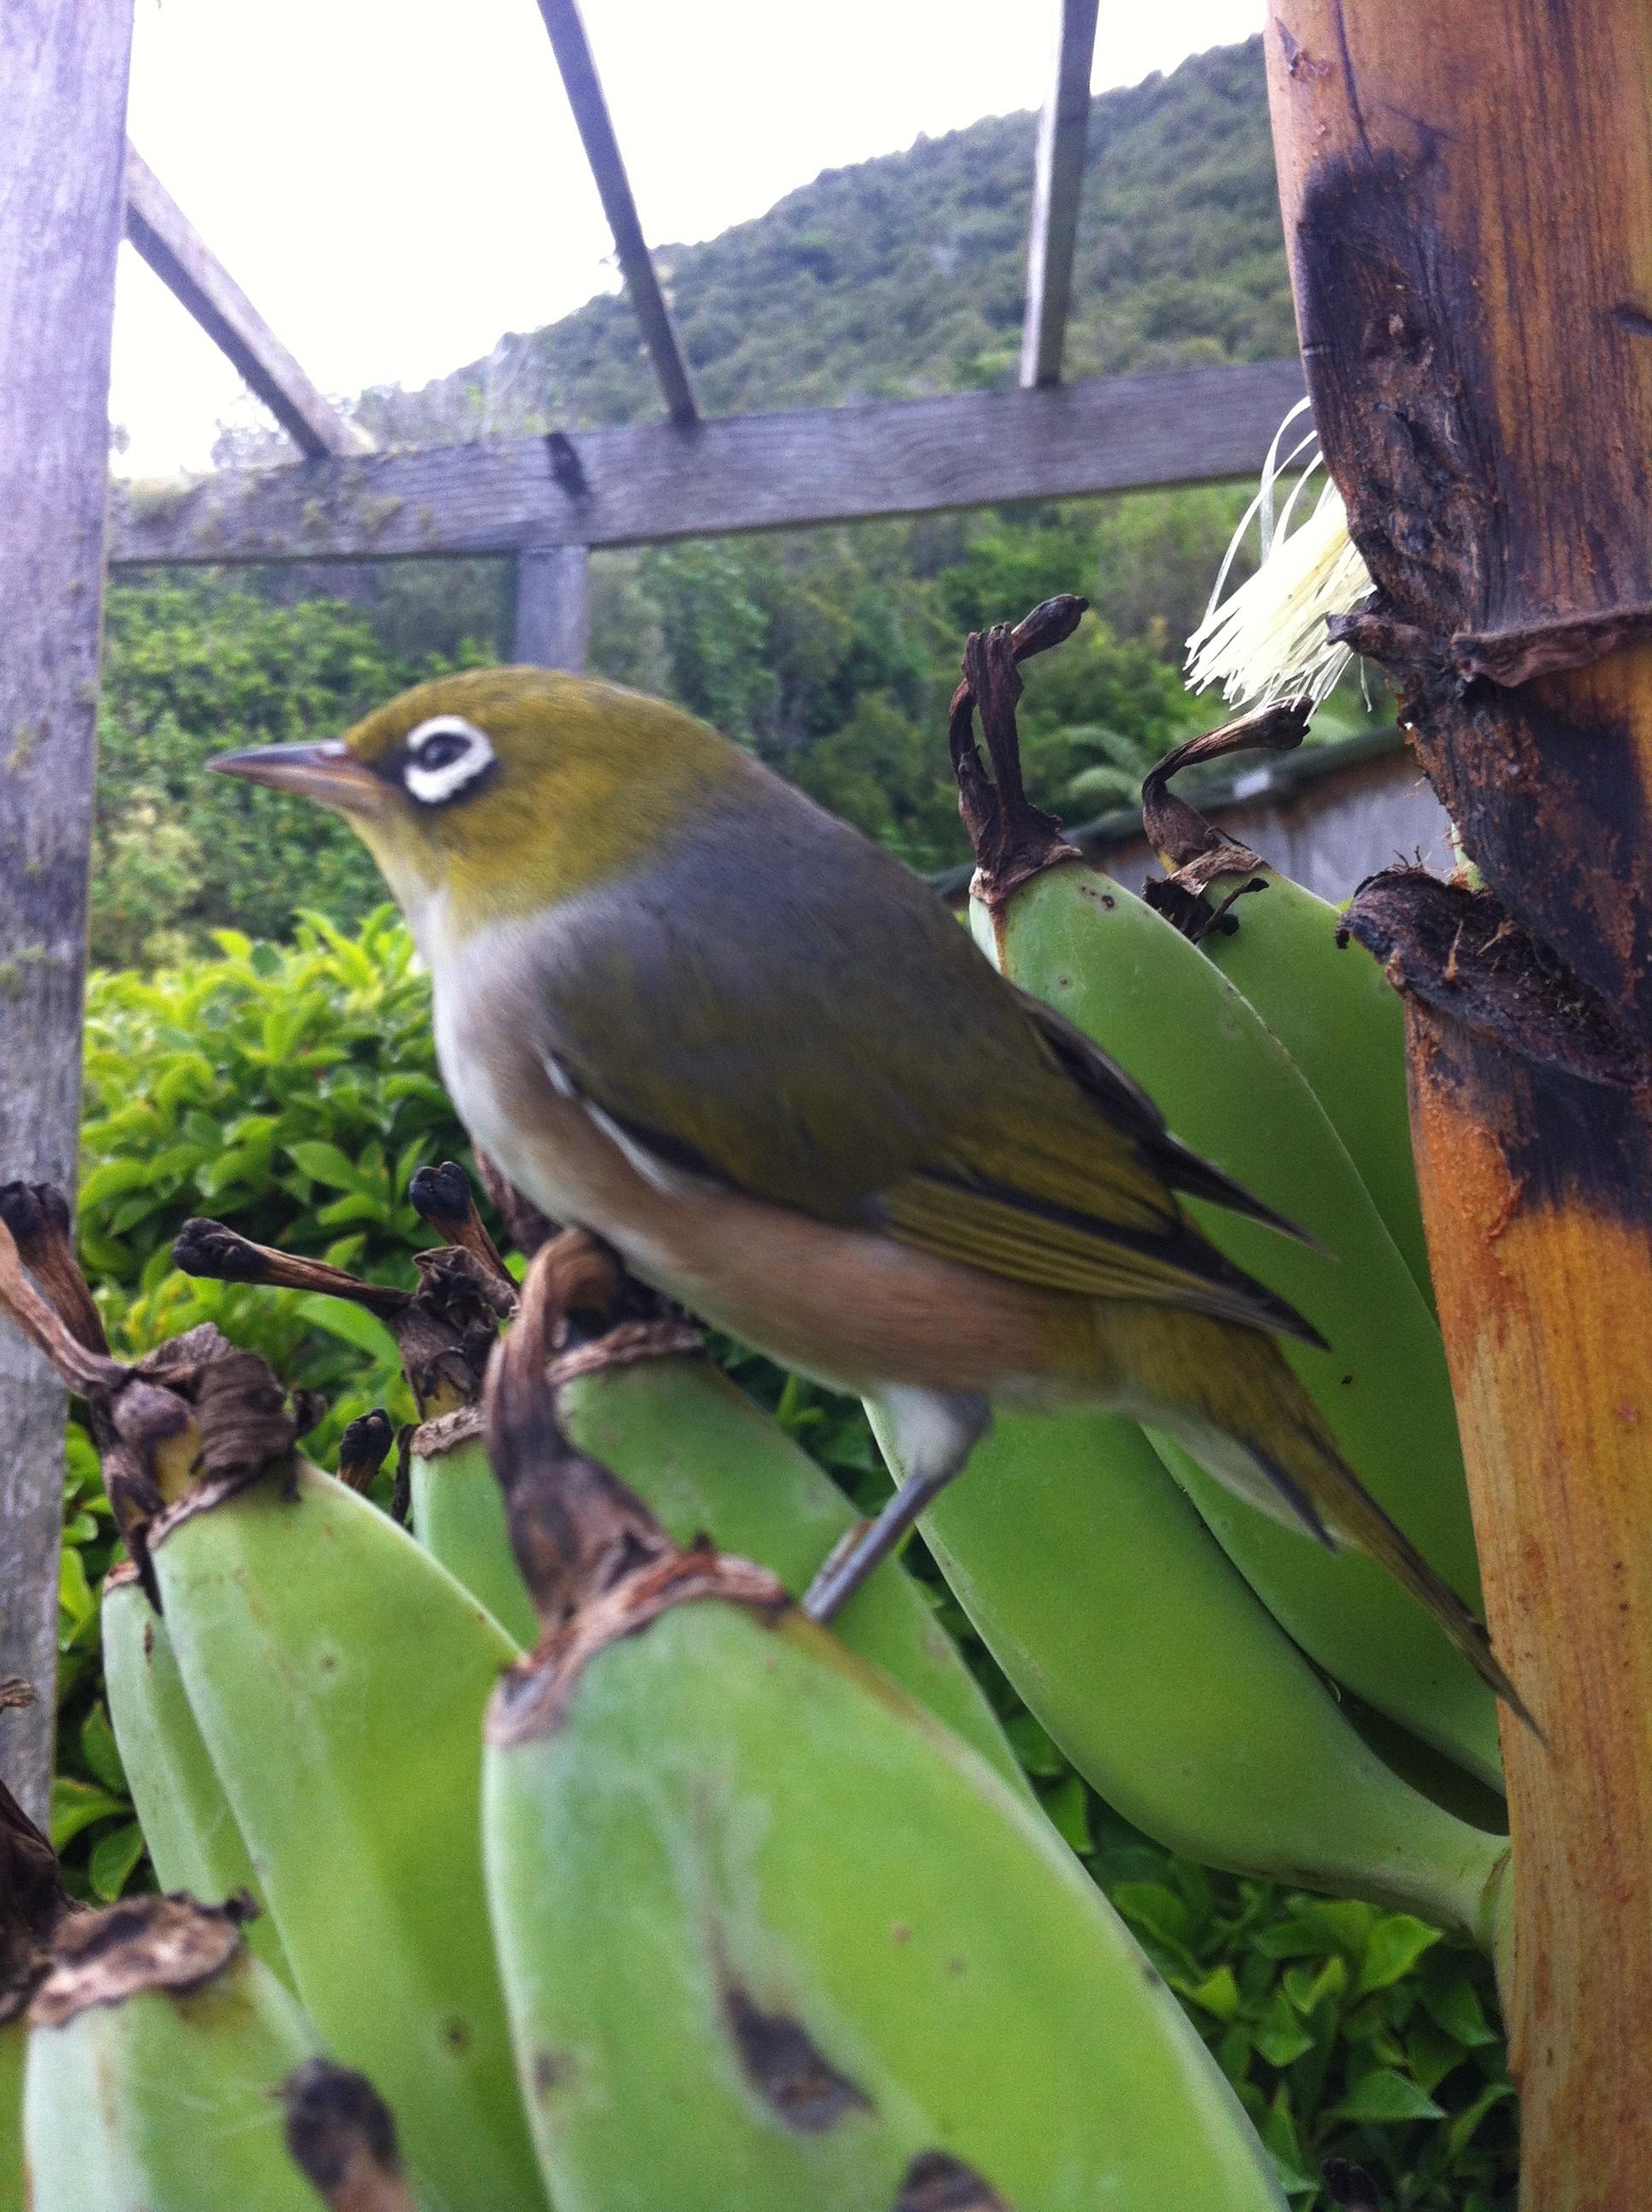 Waxeye checking out the ripeness of the bananas - not ready yet-